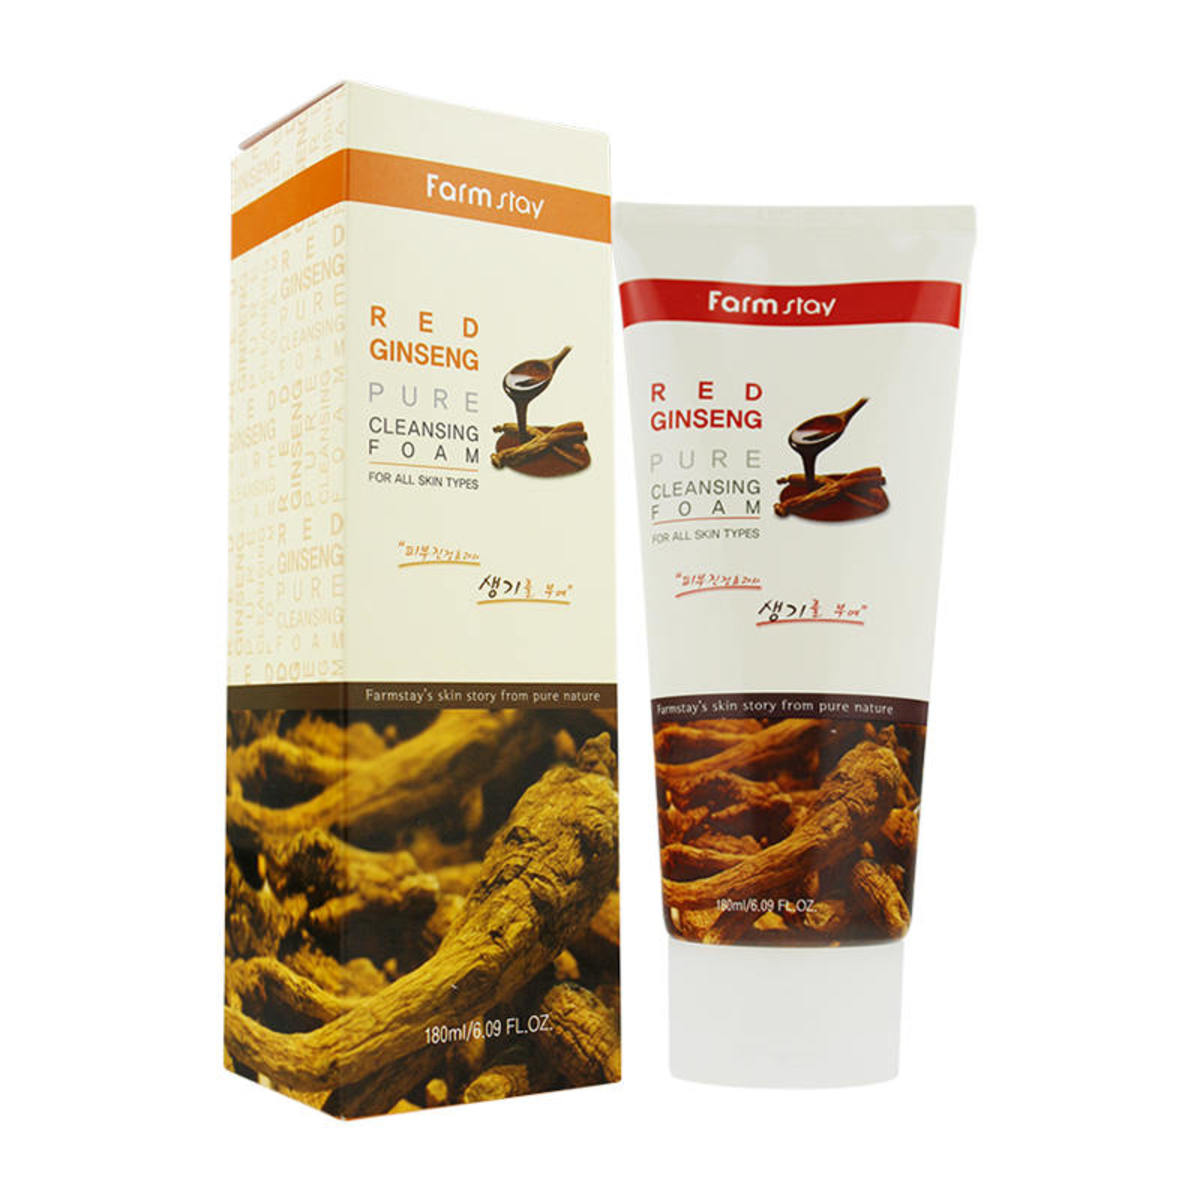 Red Ginseng Pure Cleansing Foam 180ml